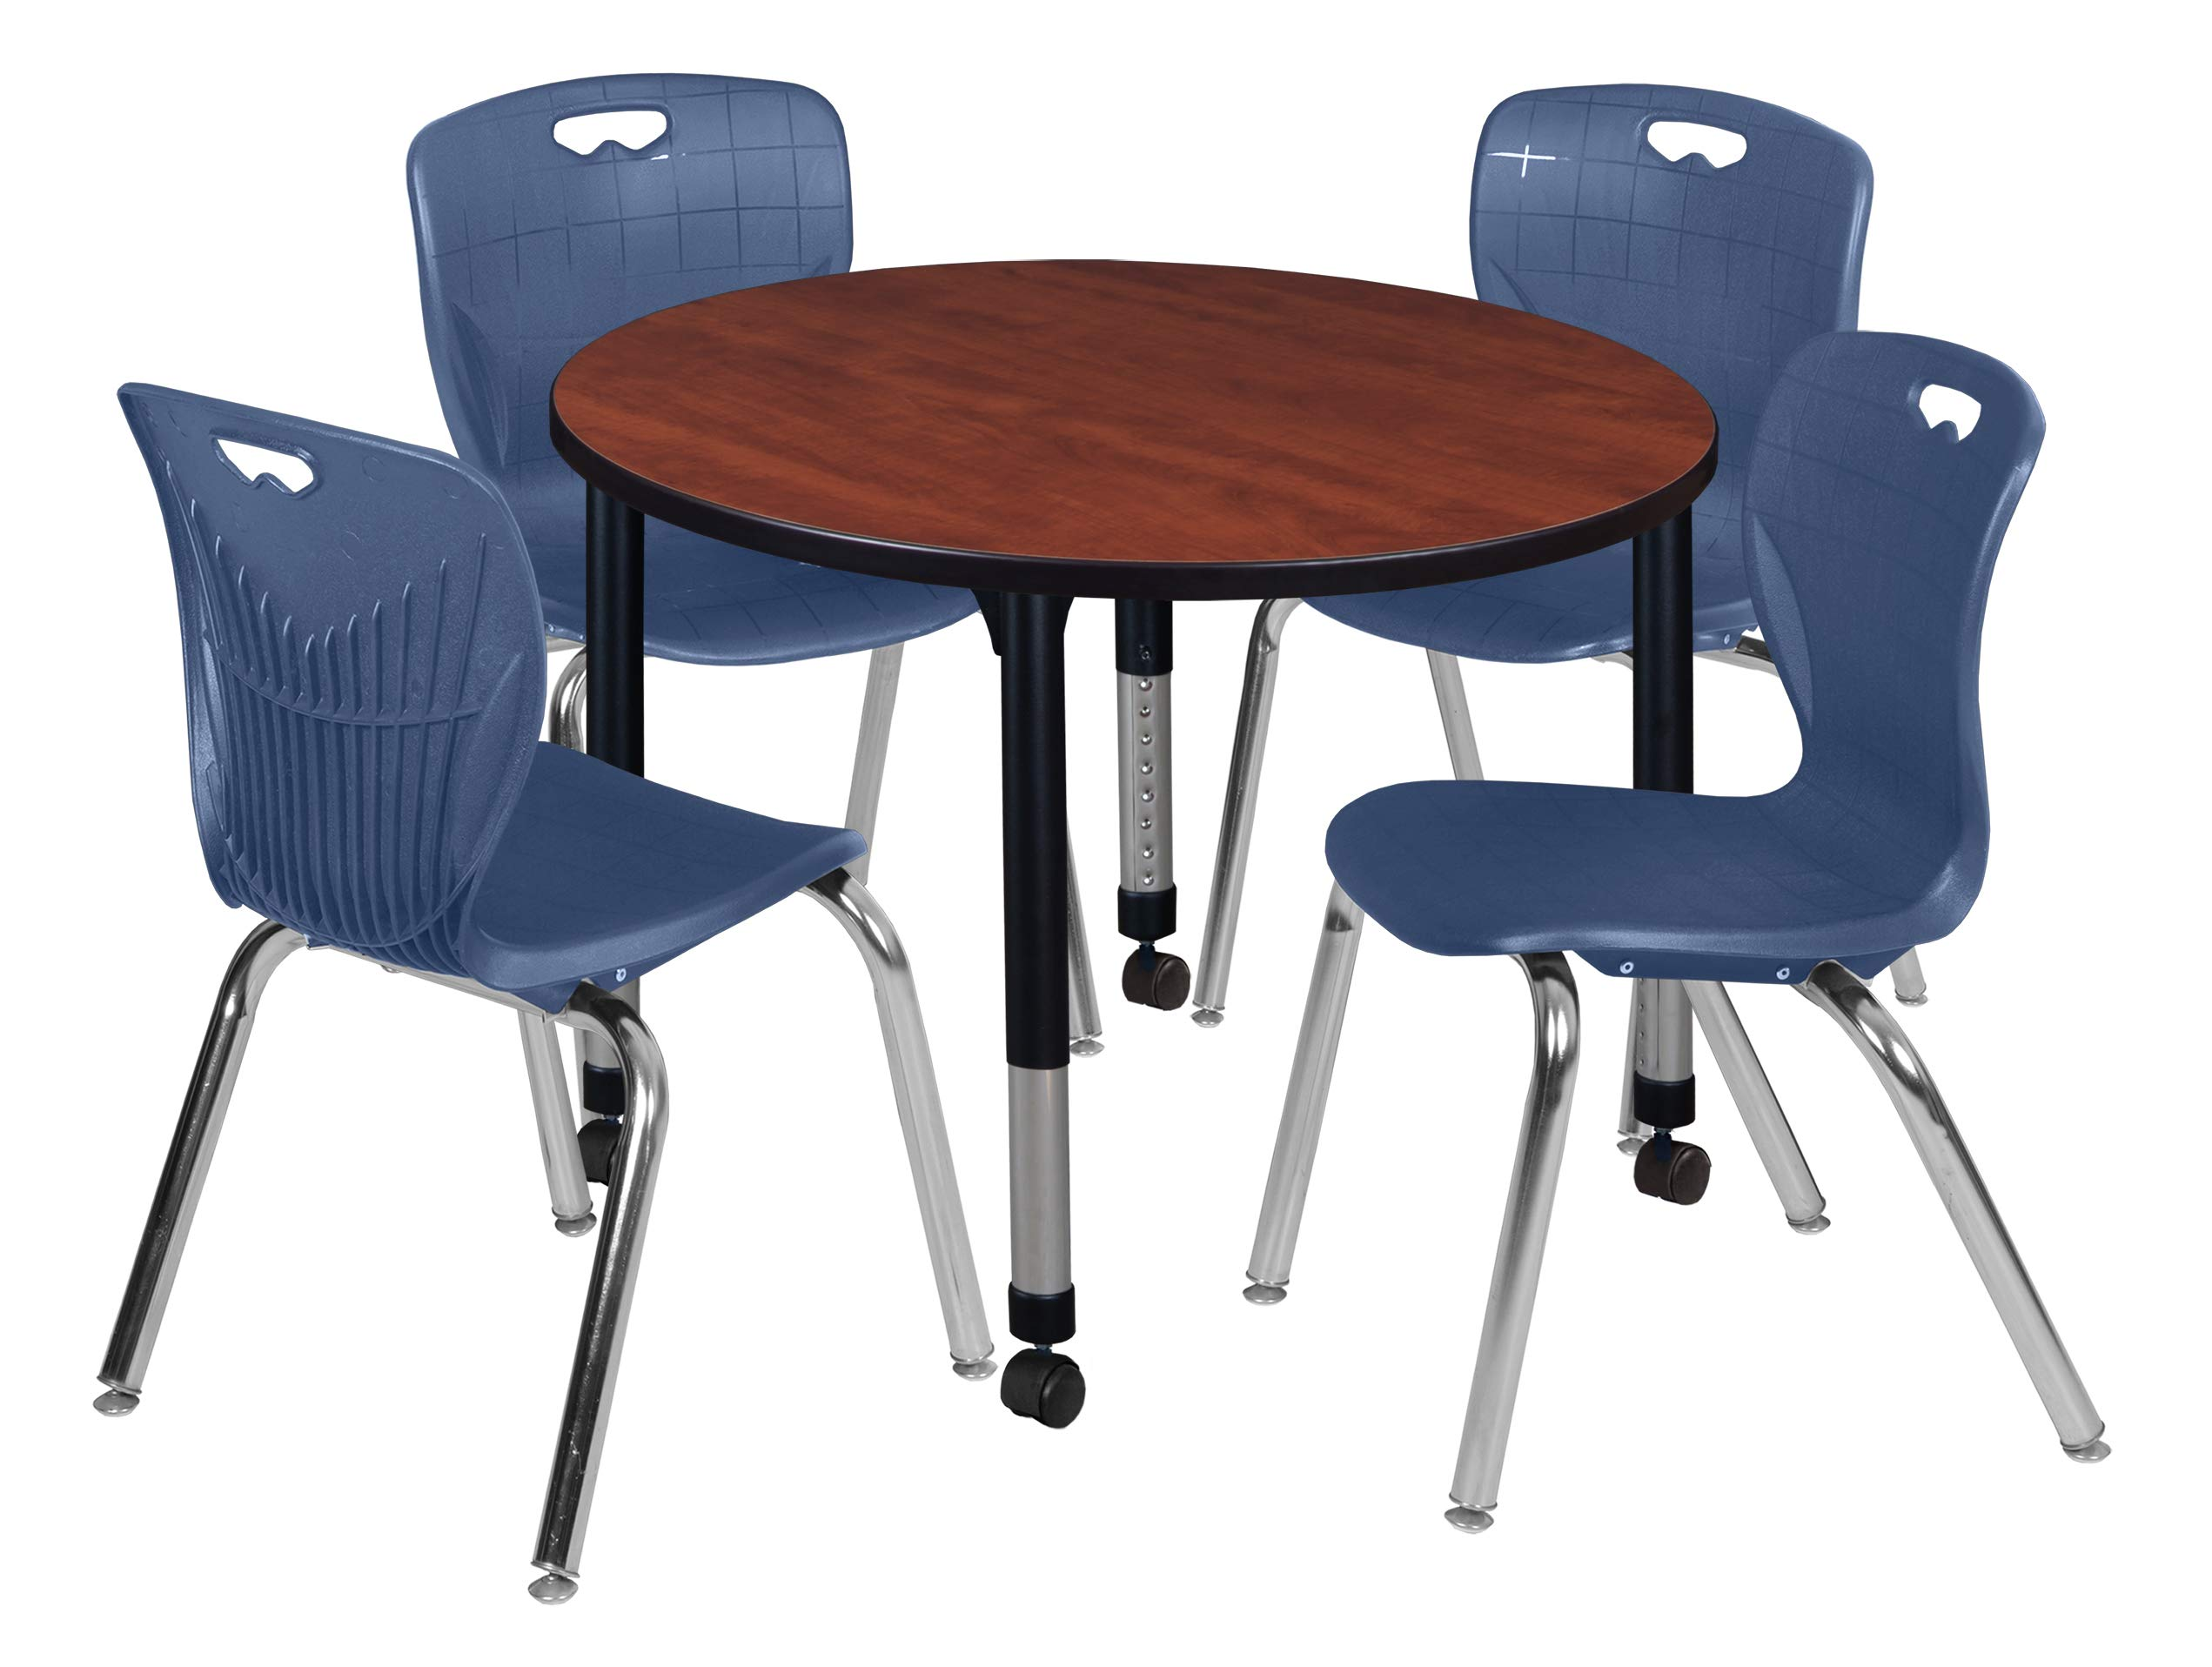 Regency TB42RNDCHAPCBK40NV Kee Height Adjustable Mobile Classroom Table Set with Four 18'' Andy Chairs, 42'', Cherry/Navy by Regency